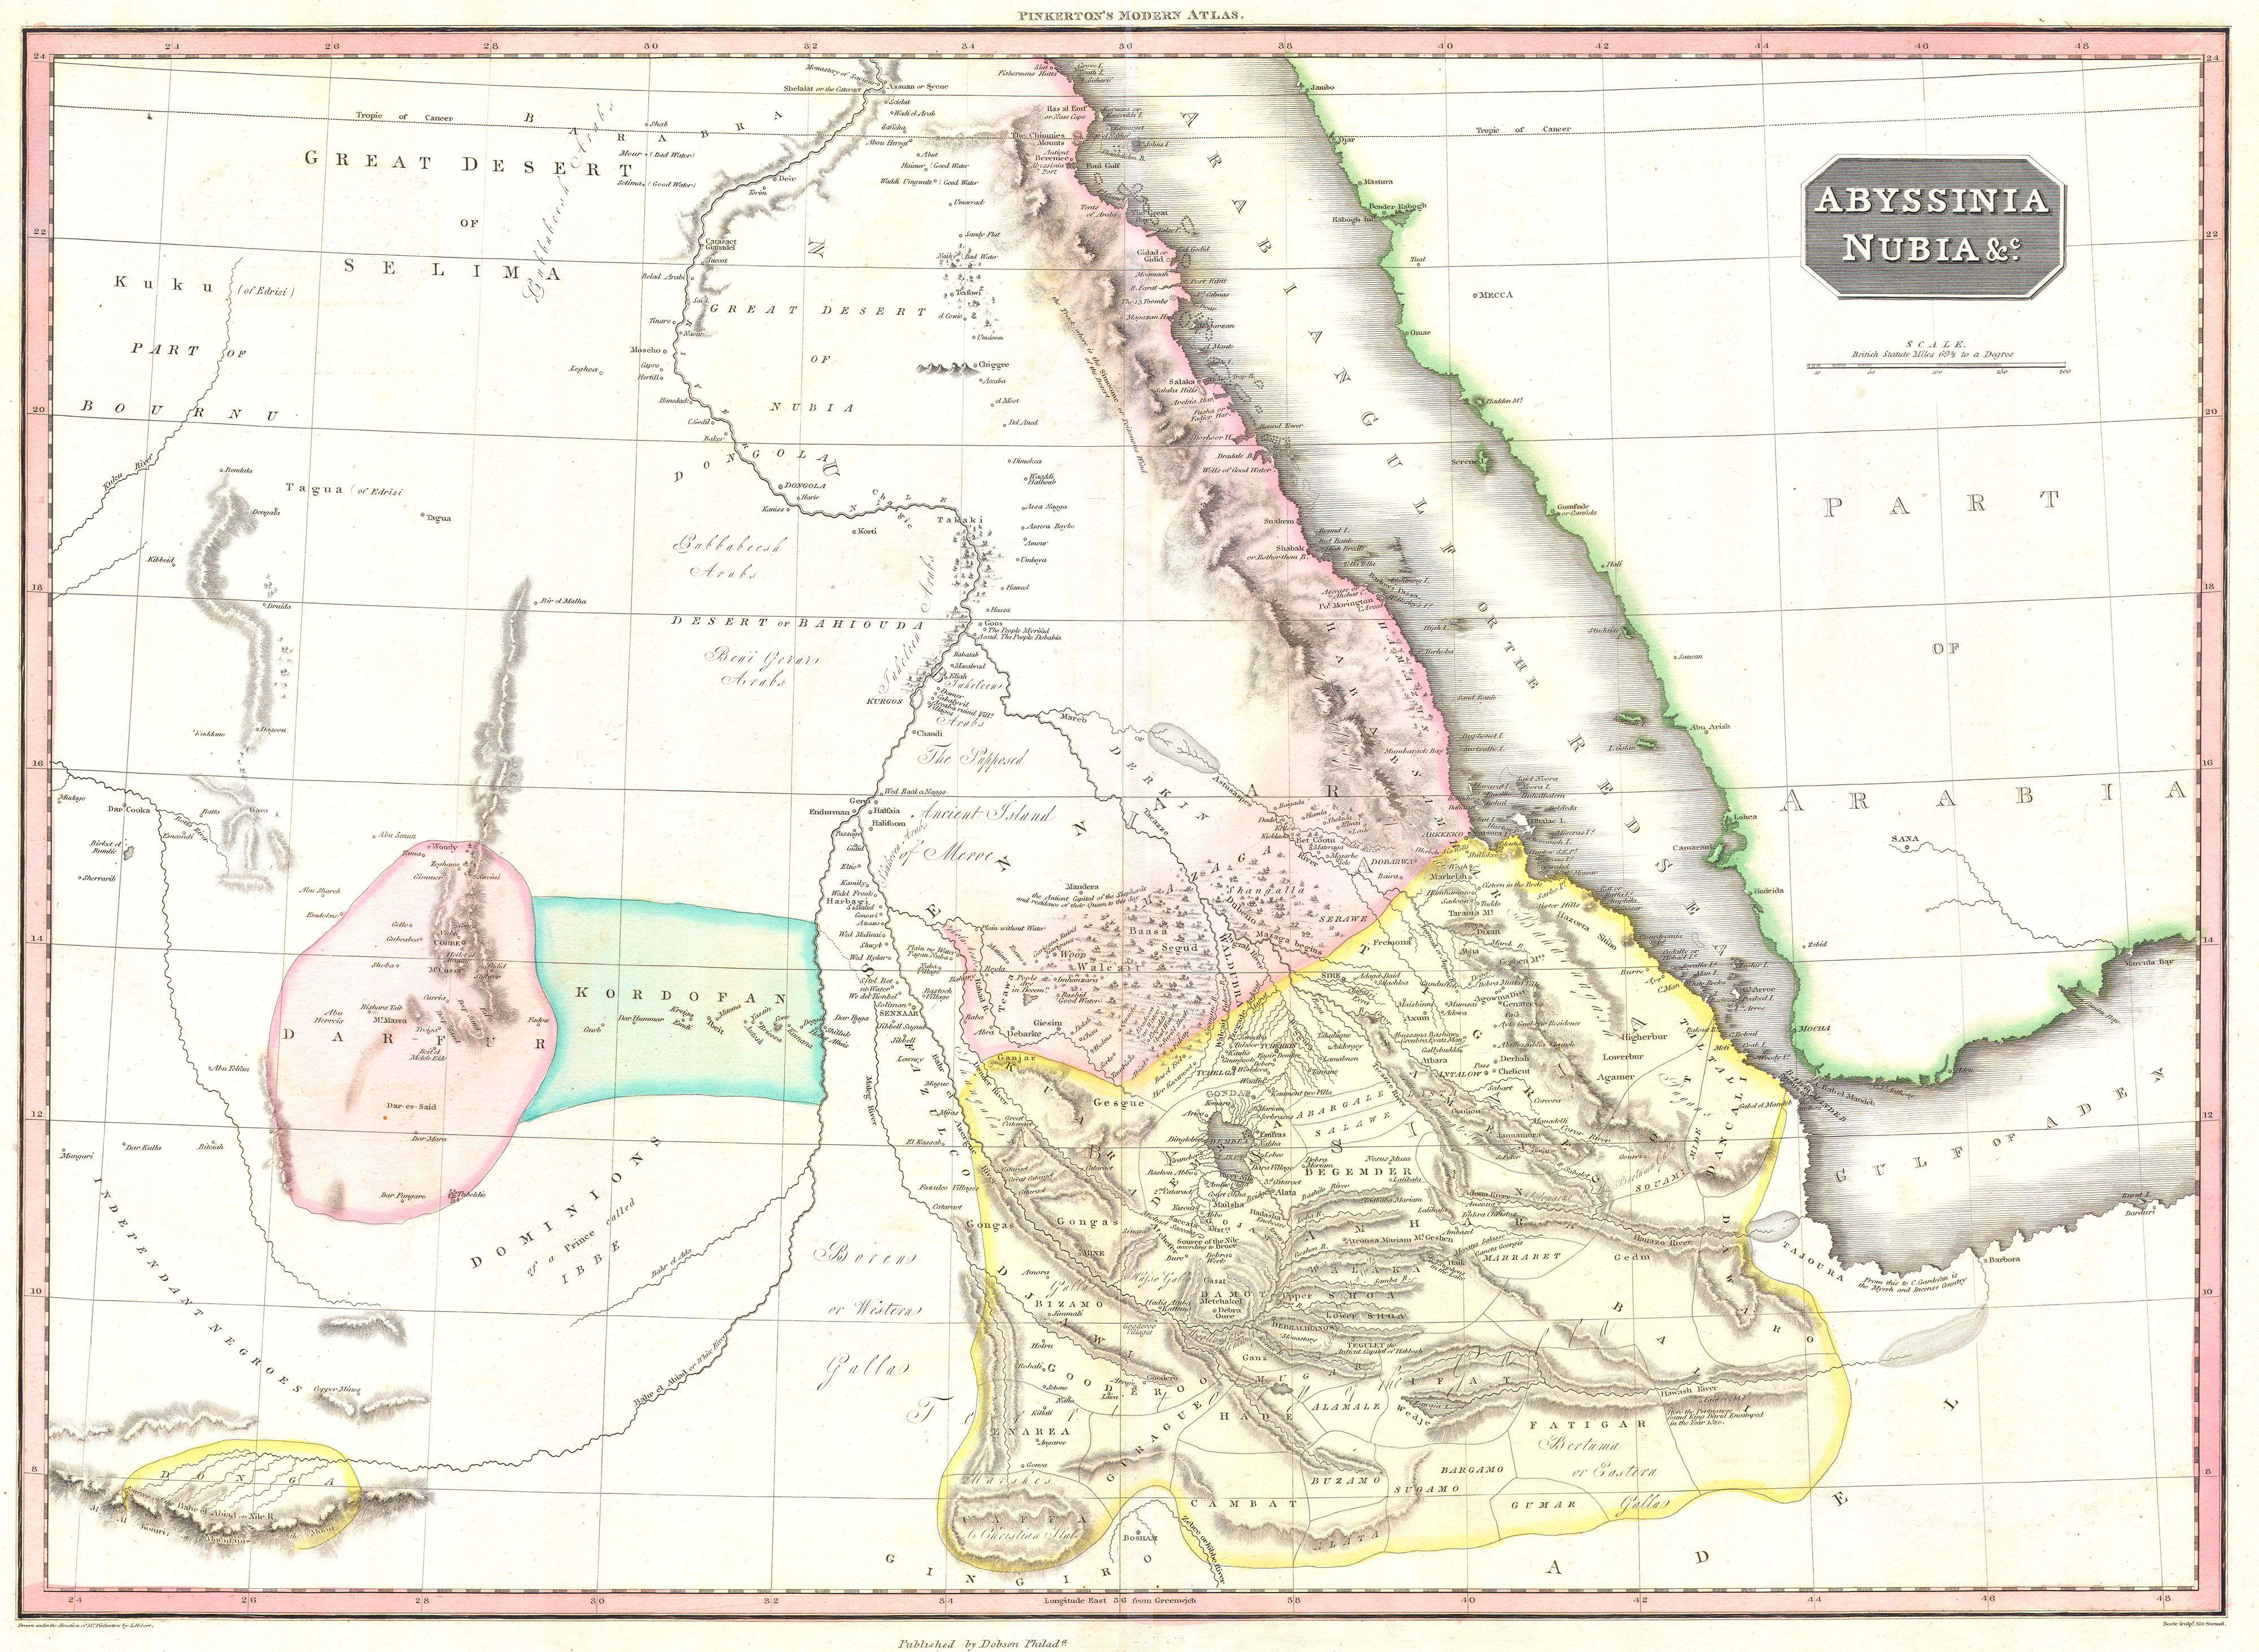 Beirut Map AfopC2Wa5 Y8BBx8AMILr9hW9EFkfO 7CwqJvT7tM FPE furthermore Index besides Middle East With Editable Ppt Maps Of Yemen additionally Index together with Gulf of Aqaba. on aden location on map